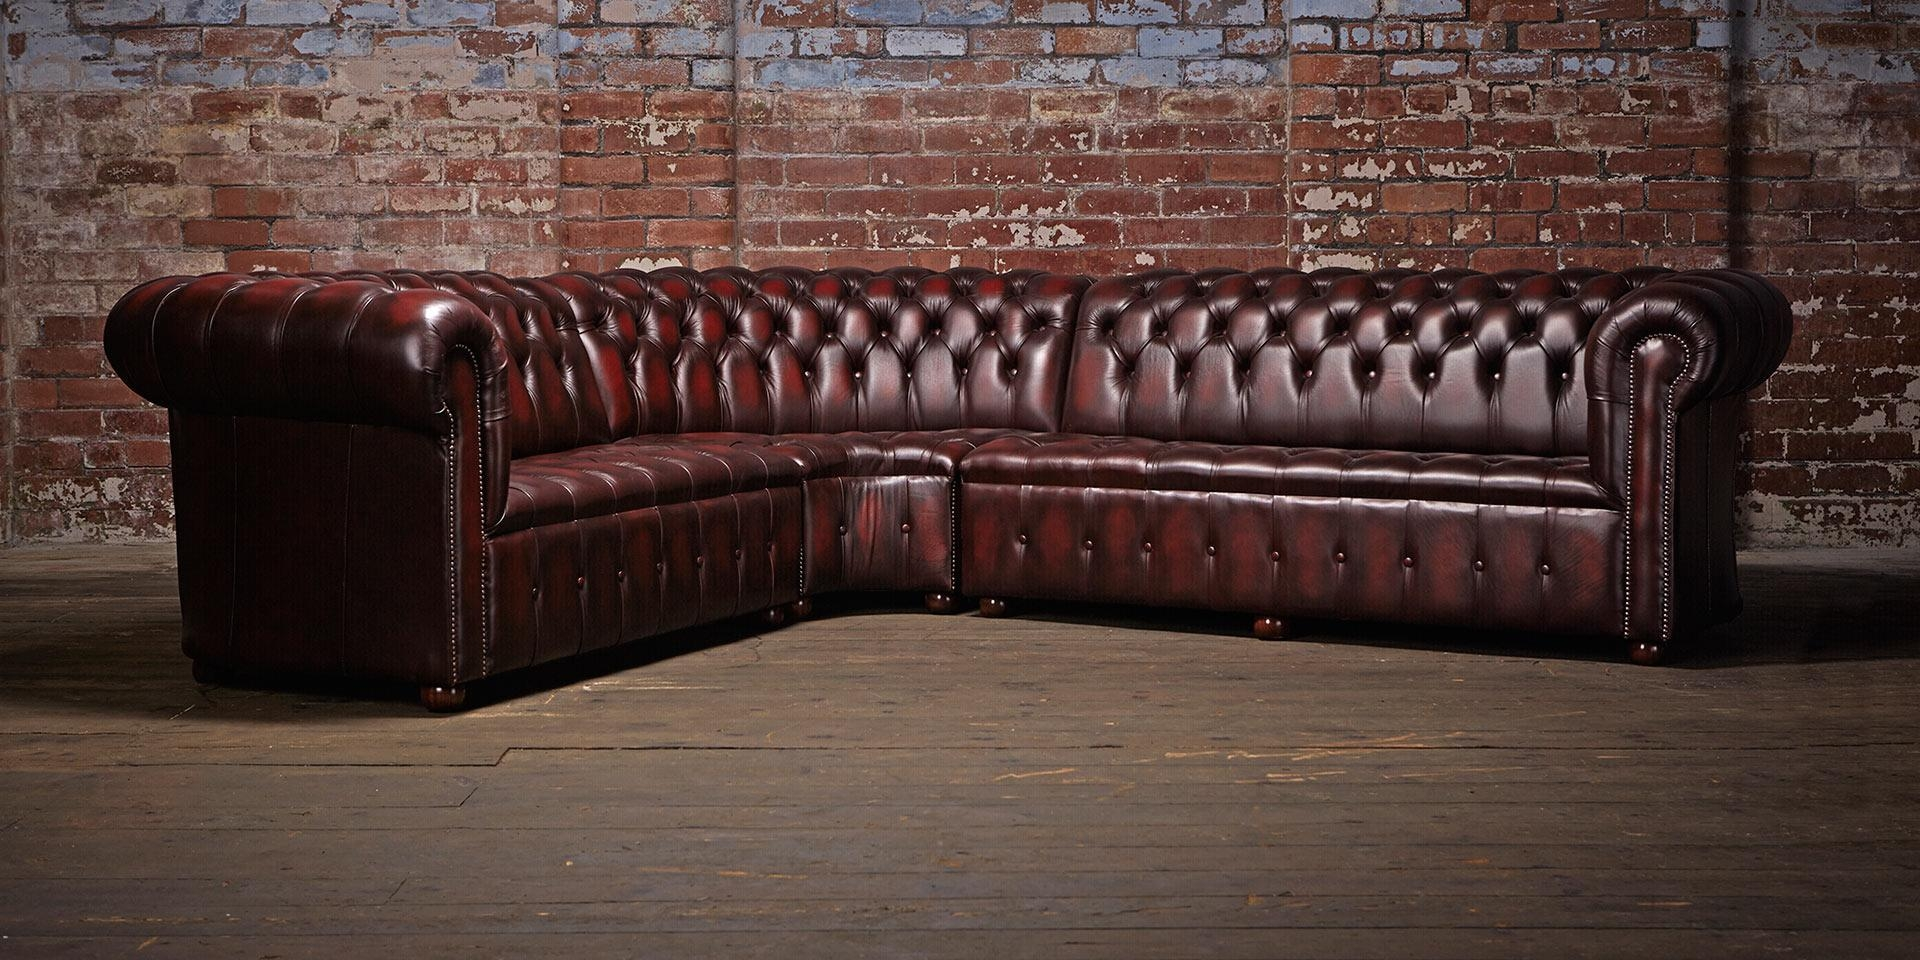 How To Buy A Chesterfield Sofa? – Bestartisticinteriors With Regard To Red Leather Chesterfield Chairs (View 7 of 20)